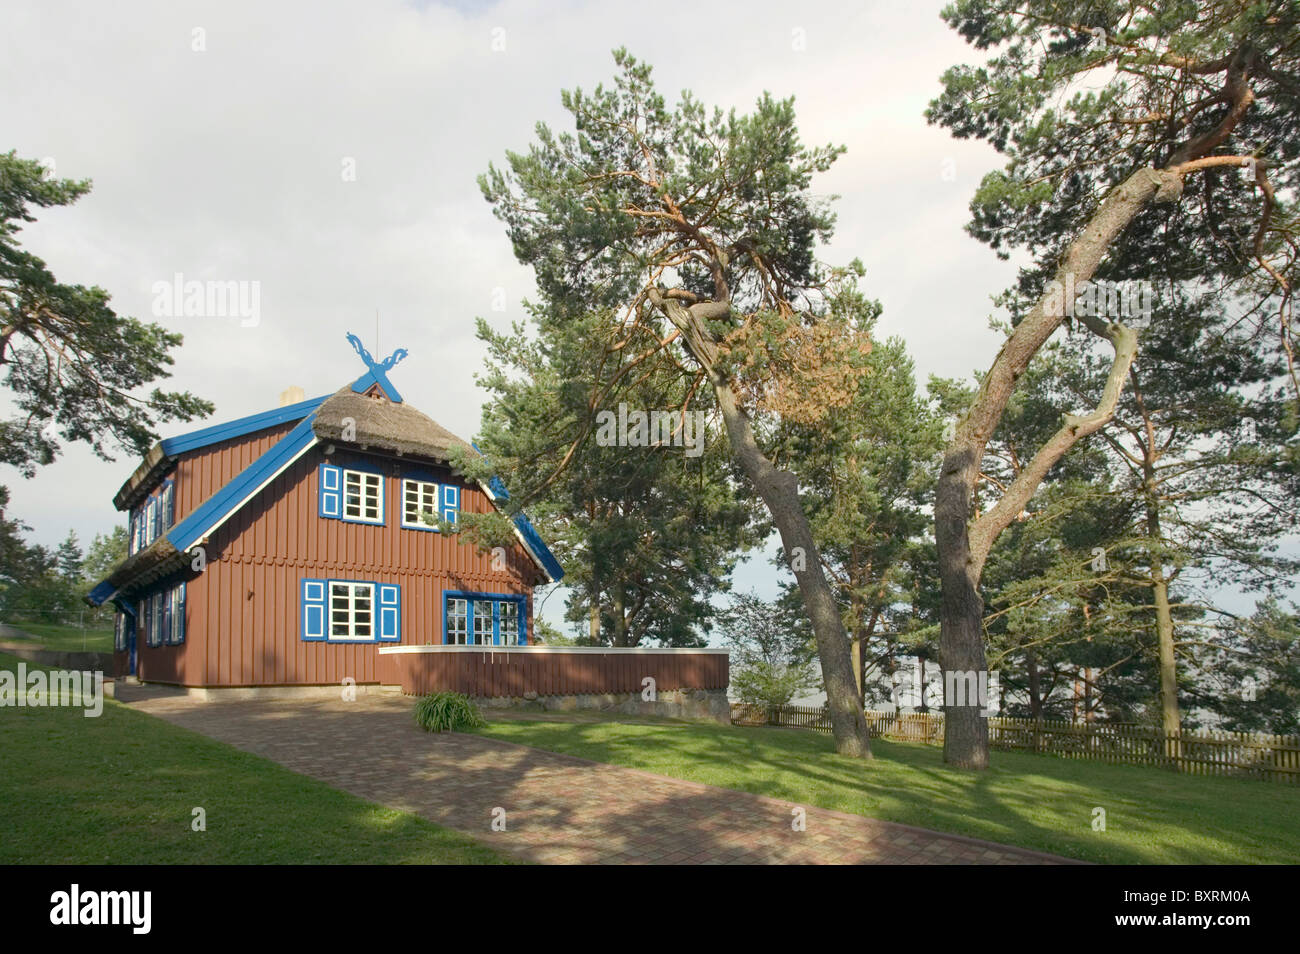 Lithuania, Curonian Spit, Nida, View of Thomas Mann House - Stock Image